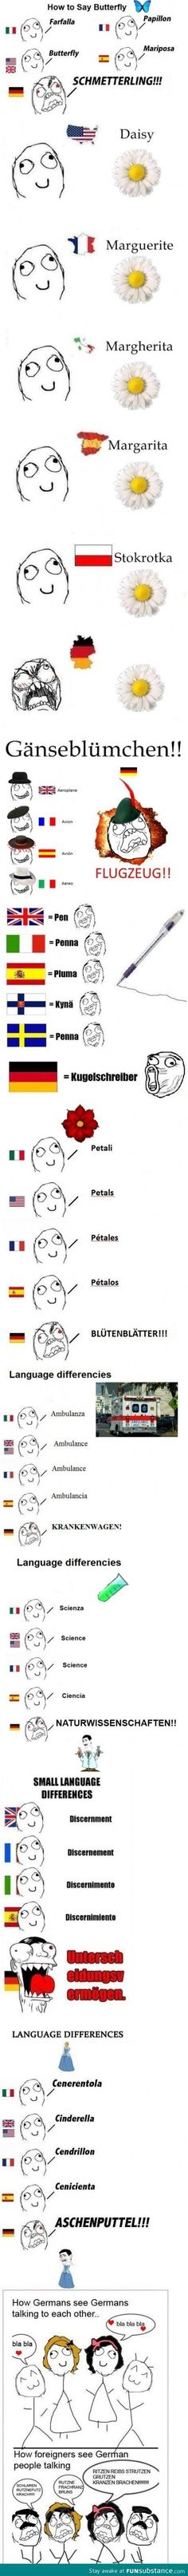 German language - I don't know why I laugh so much at this!!